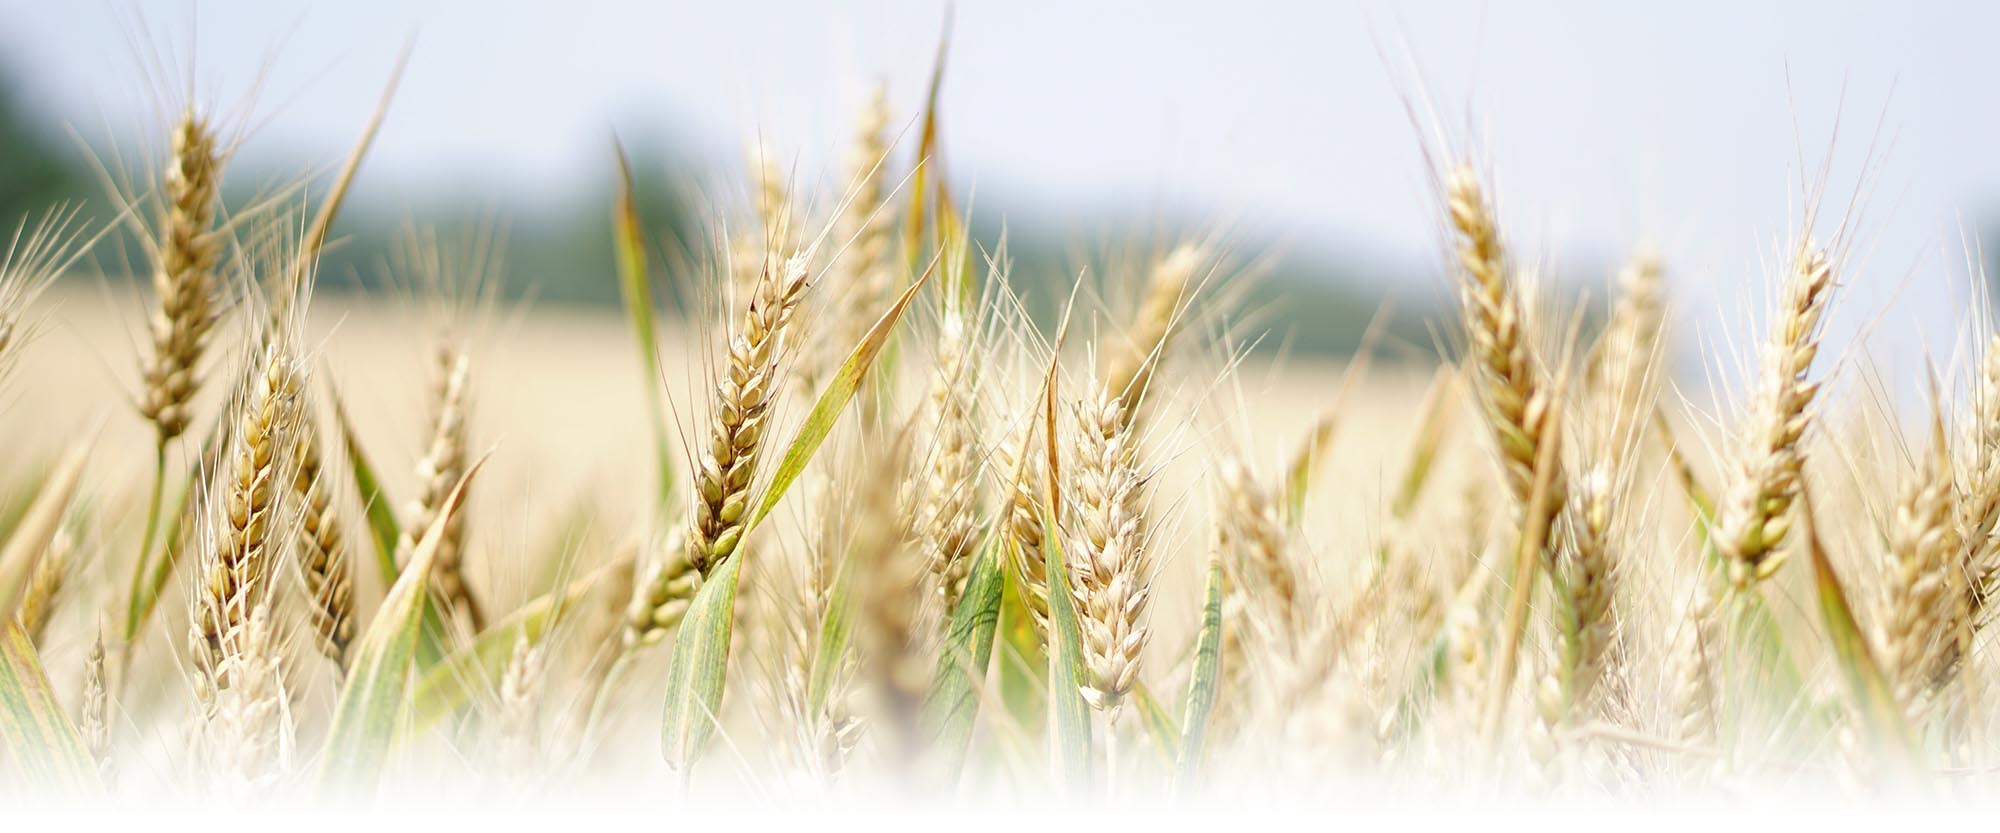 Grain export 2019/20: 14 mln t of wheat shipped from Ukraine - 12.12.2019